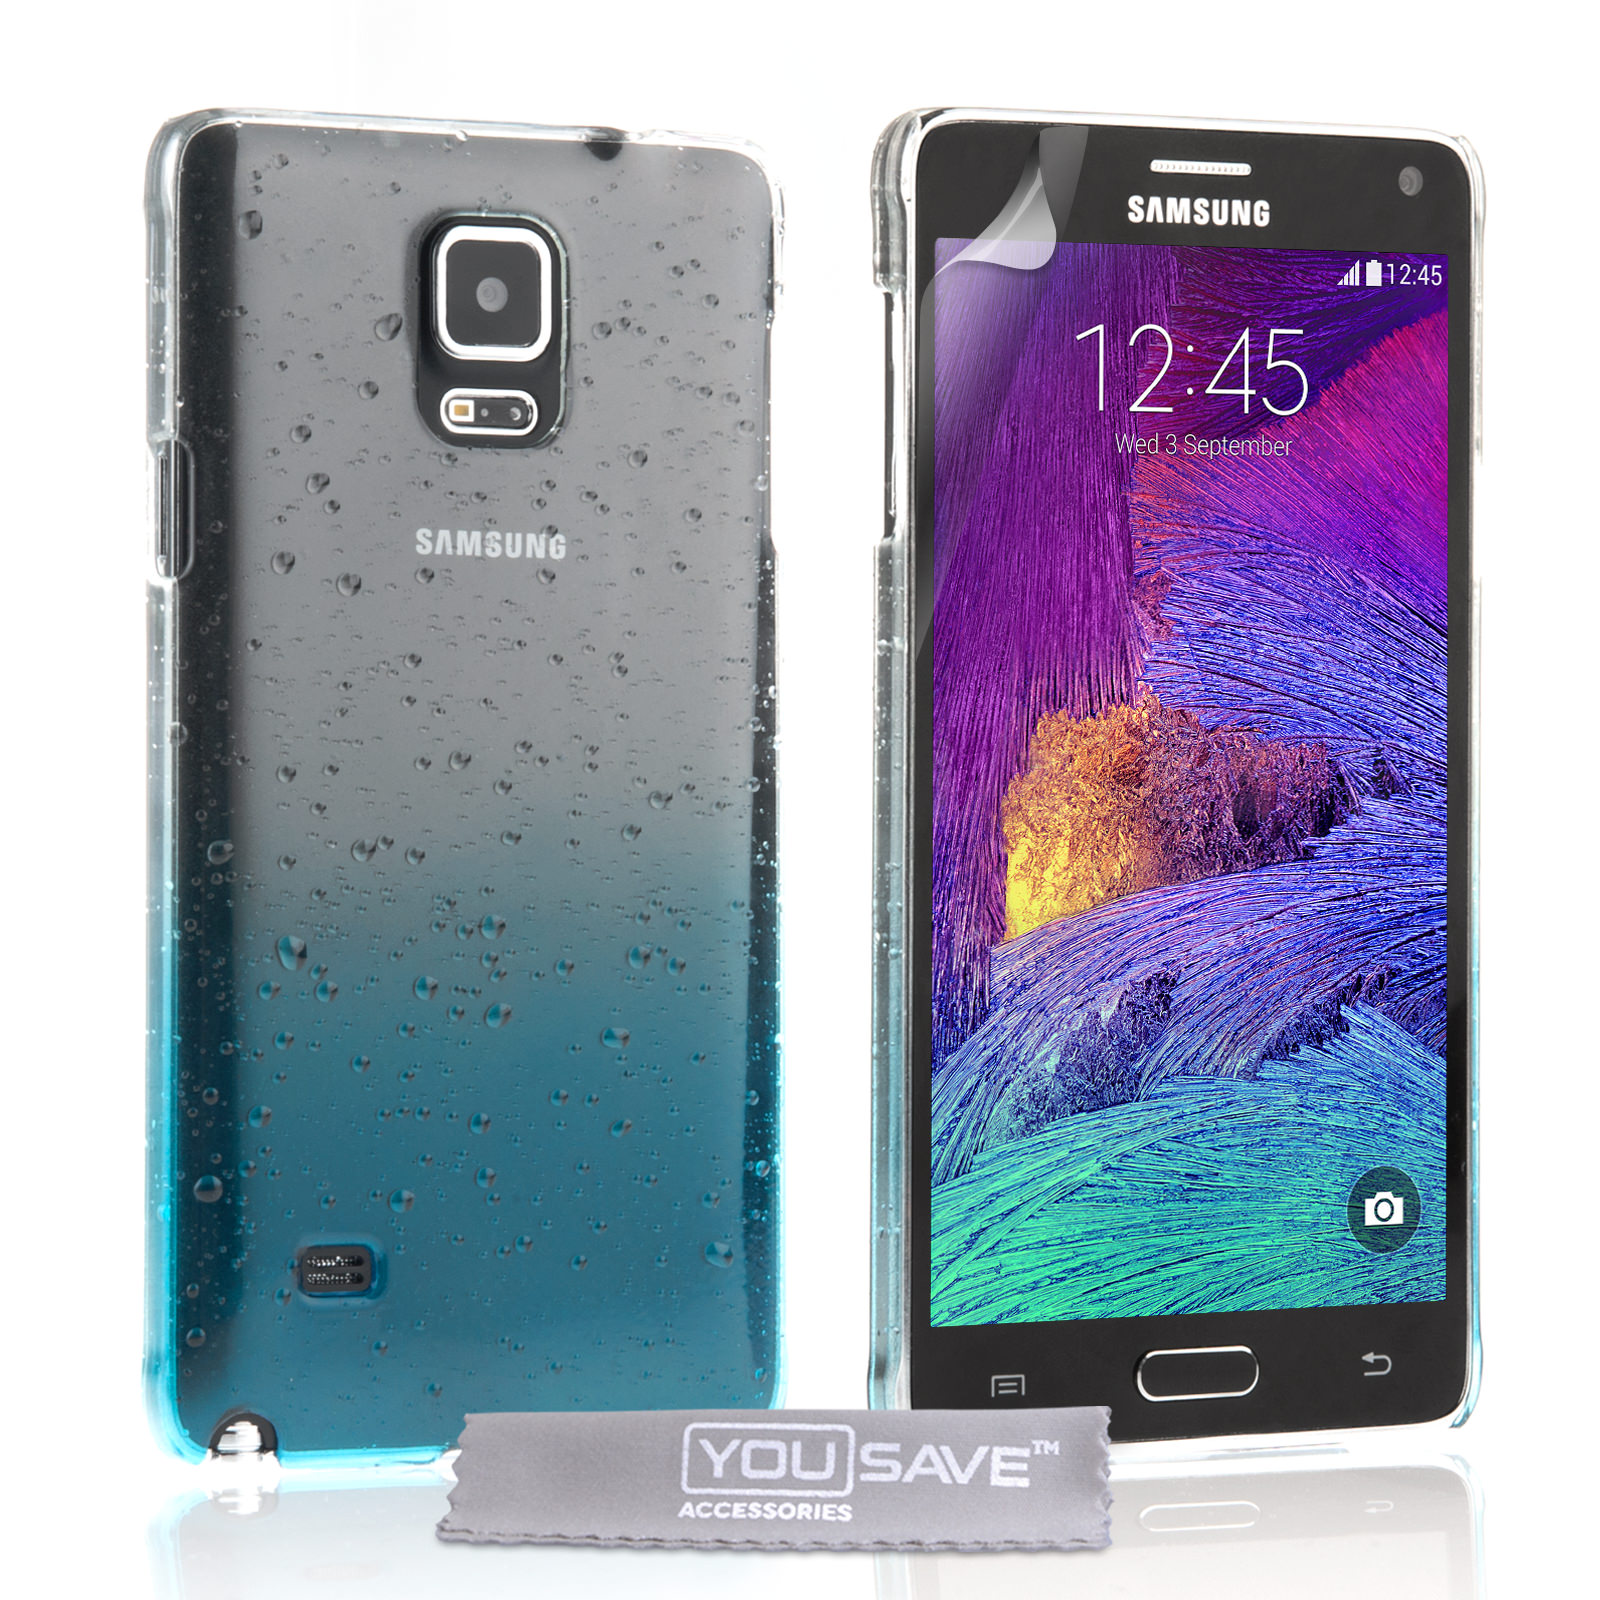 YouSave Samsung Galaxy Note 4 Raindrop Hard Case - Blue-Clear